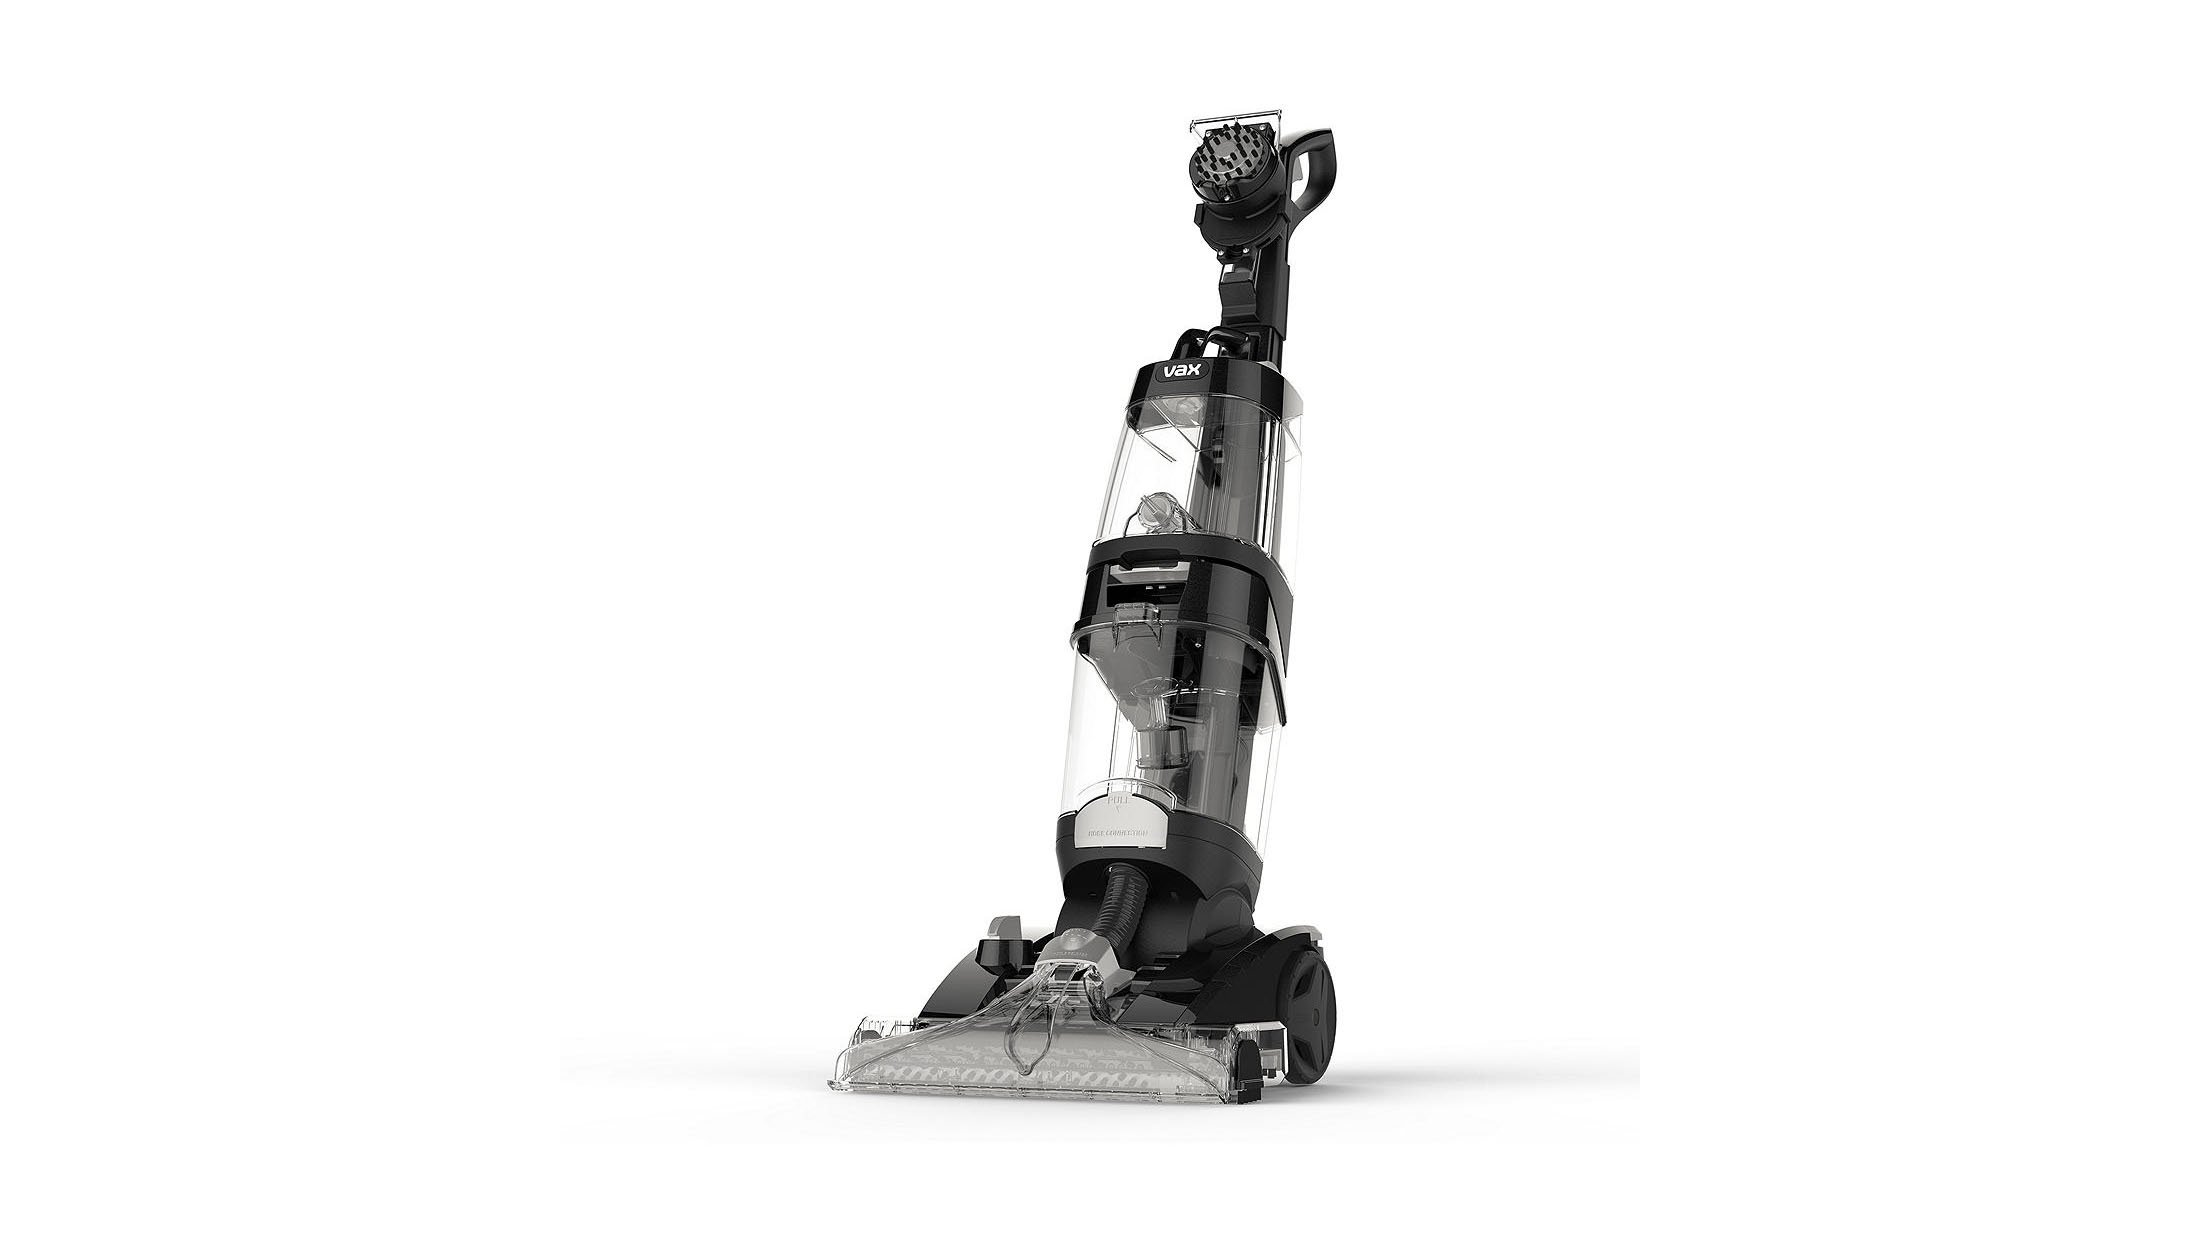 This new top-of-the-range Vax is arguably the best carpet cleaner on the market right now and a perfect model for dog owners, large families, clumsy folk or ...